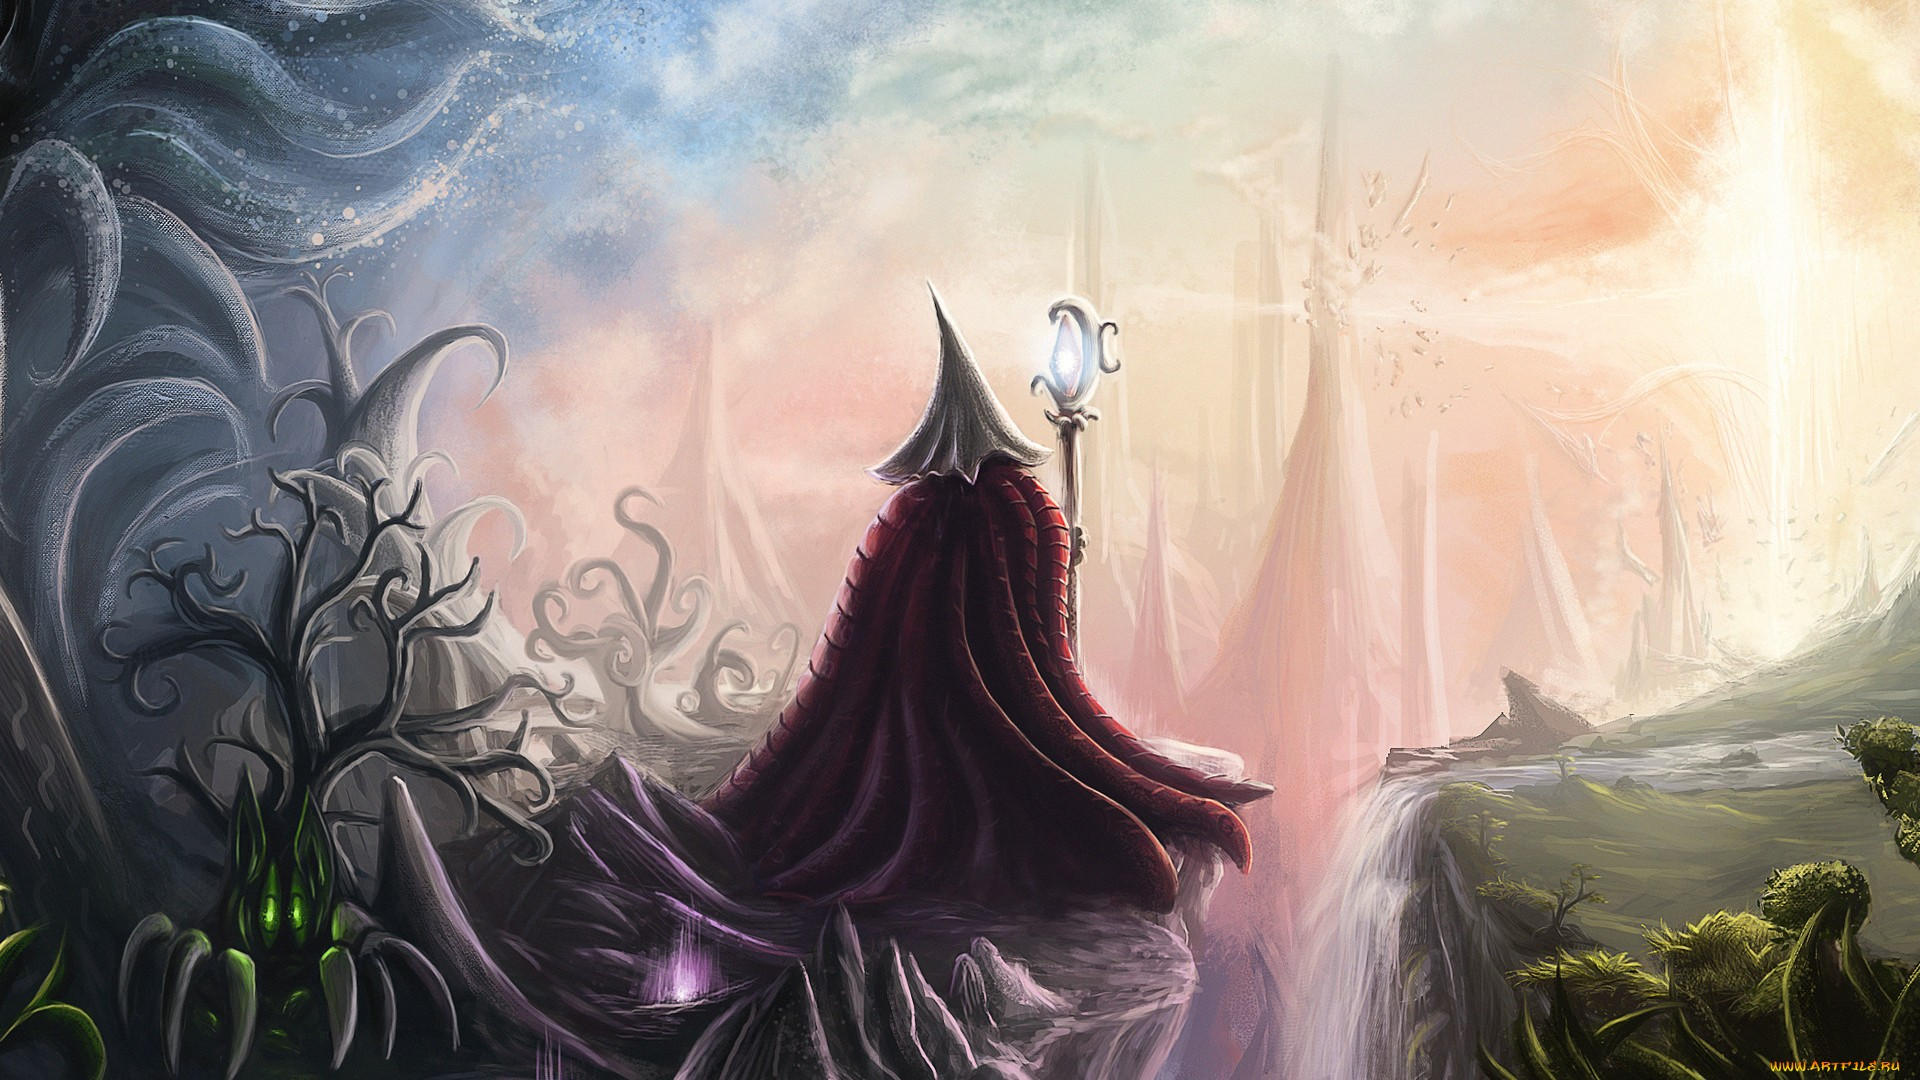 1920x1080 wizard wallpapers - photo #21